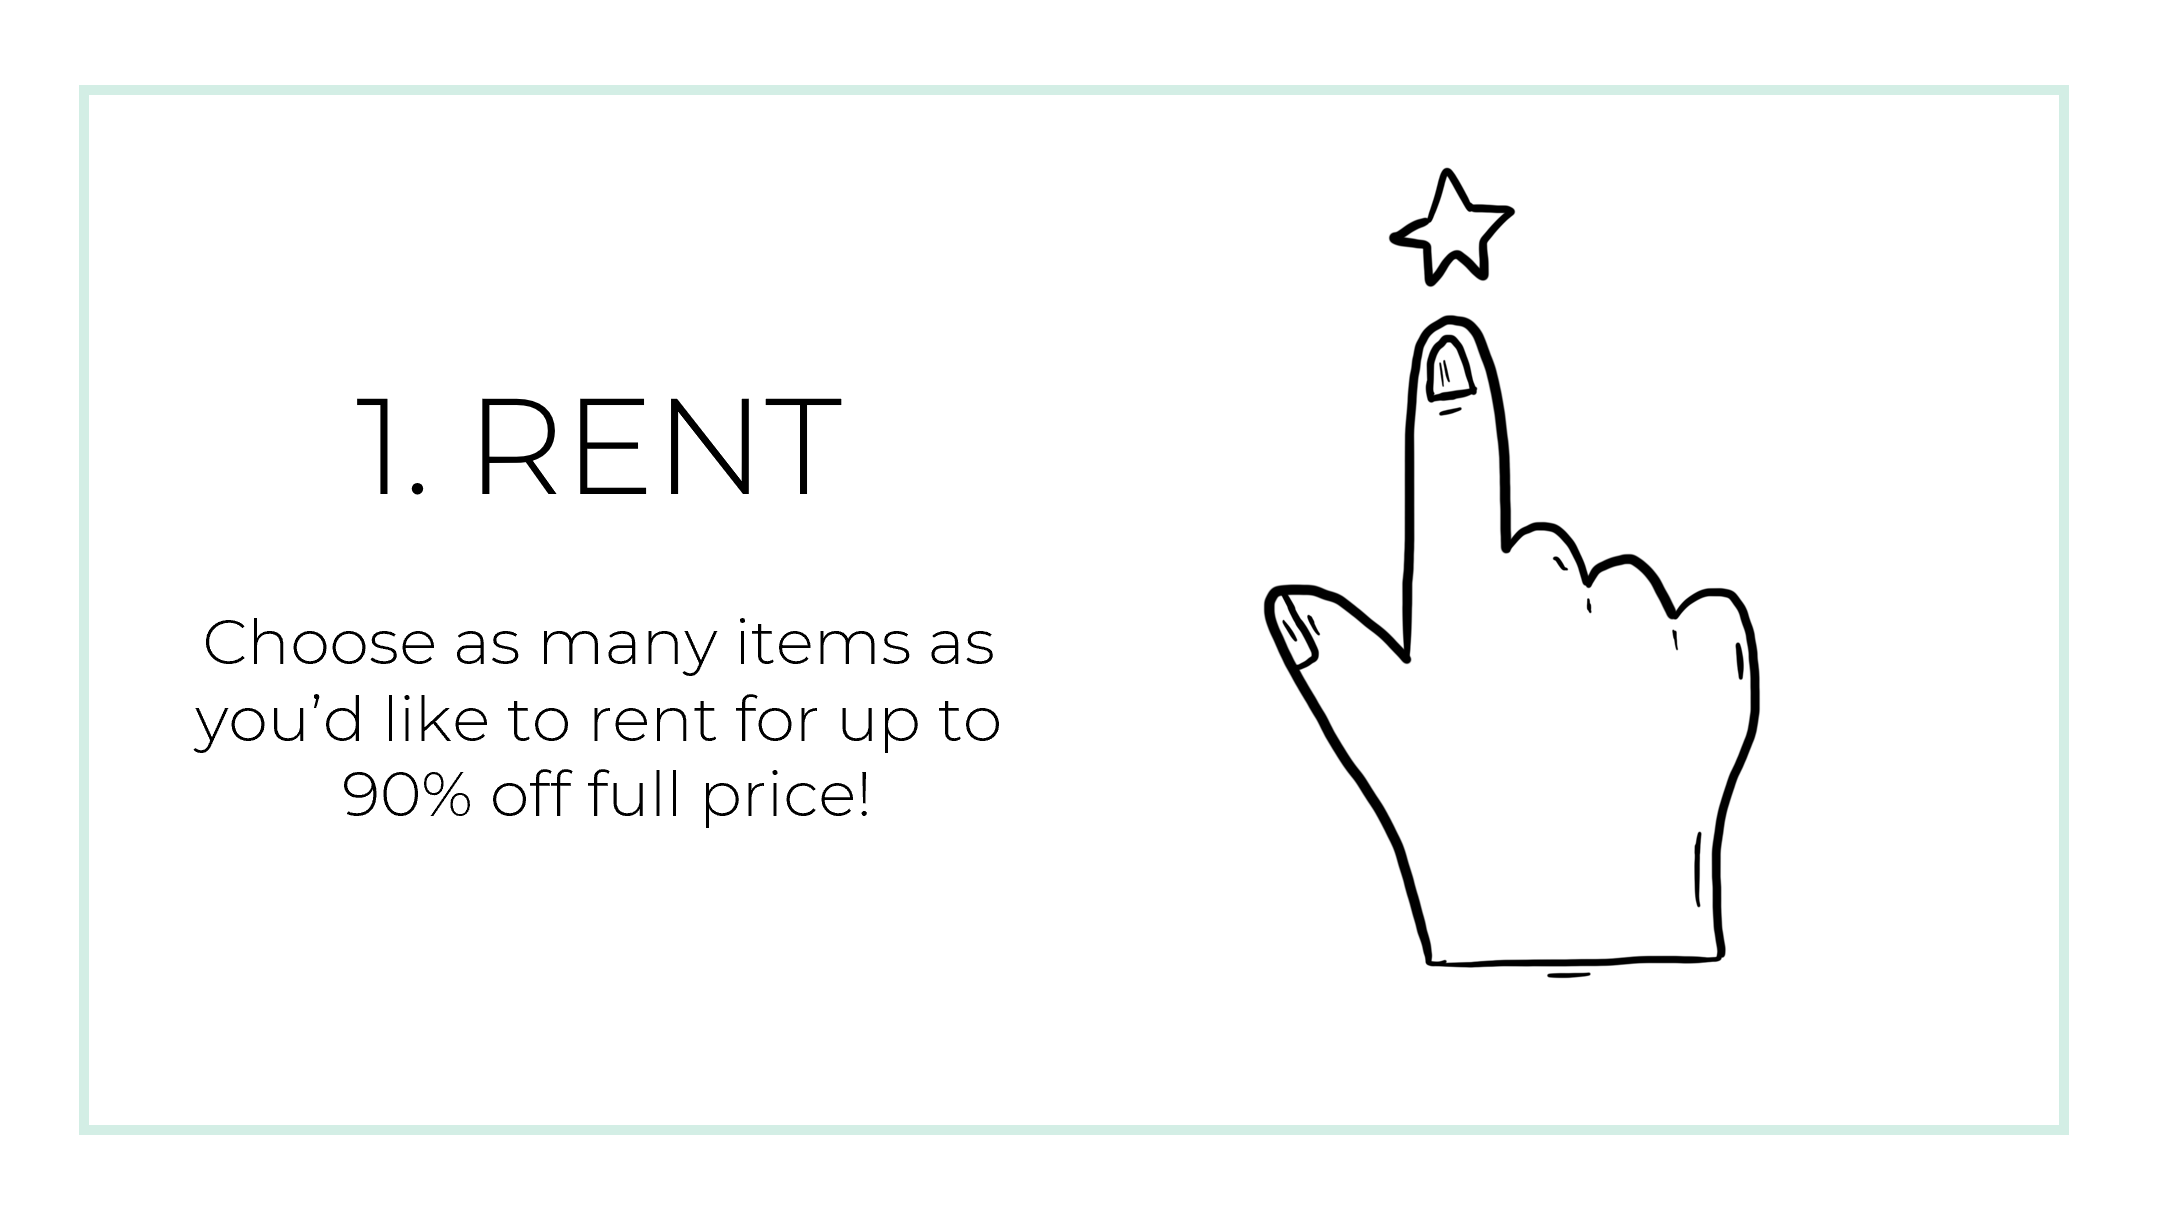 Choose as many items as you'd like to rent for up to 90% off full price!